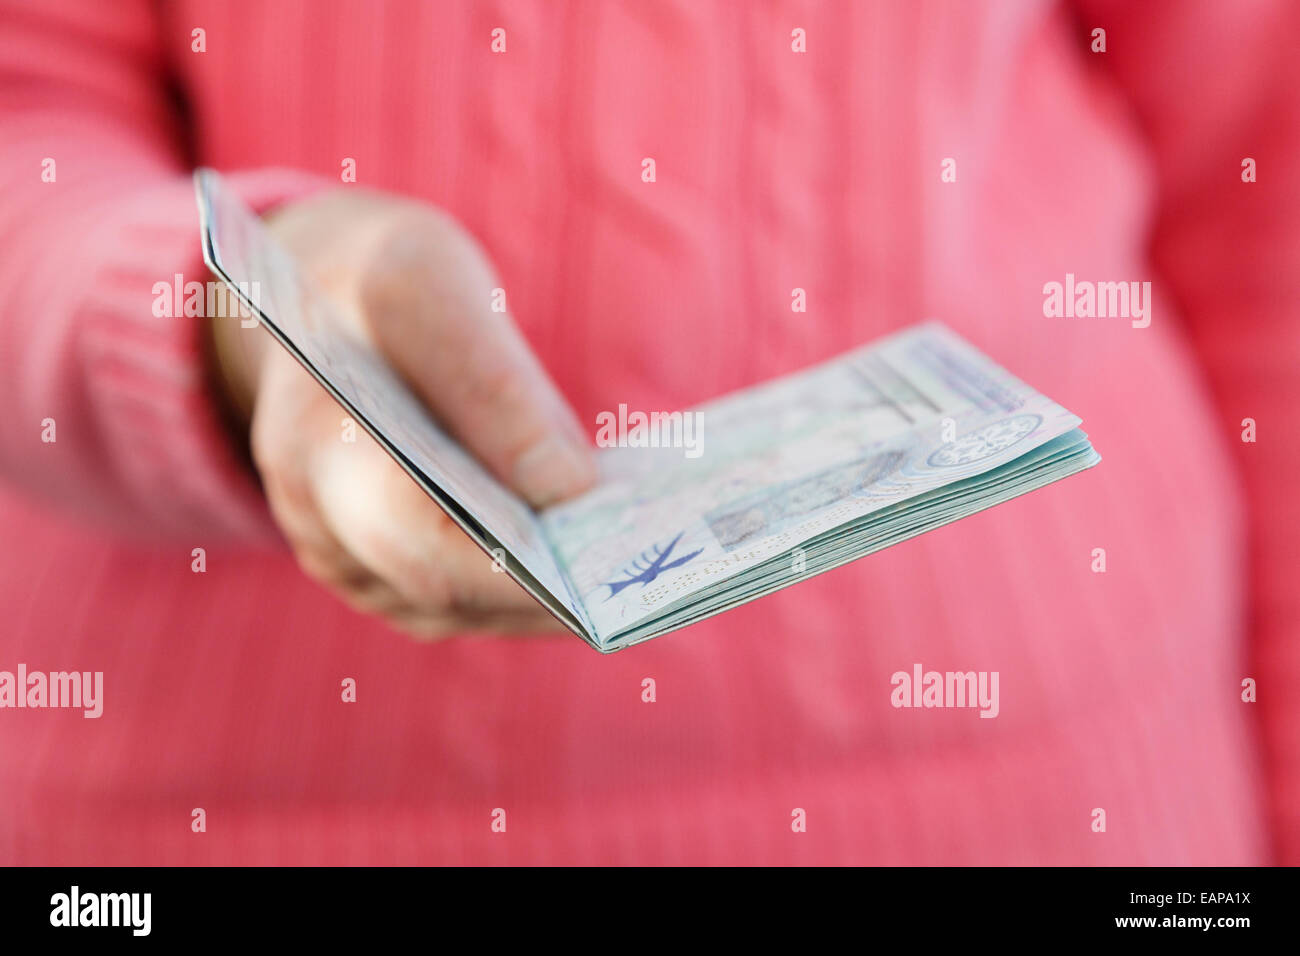 A right-handed older woman presenting an open British passport for checking at passport control when travelling - Stock Image